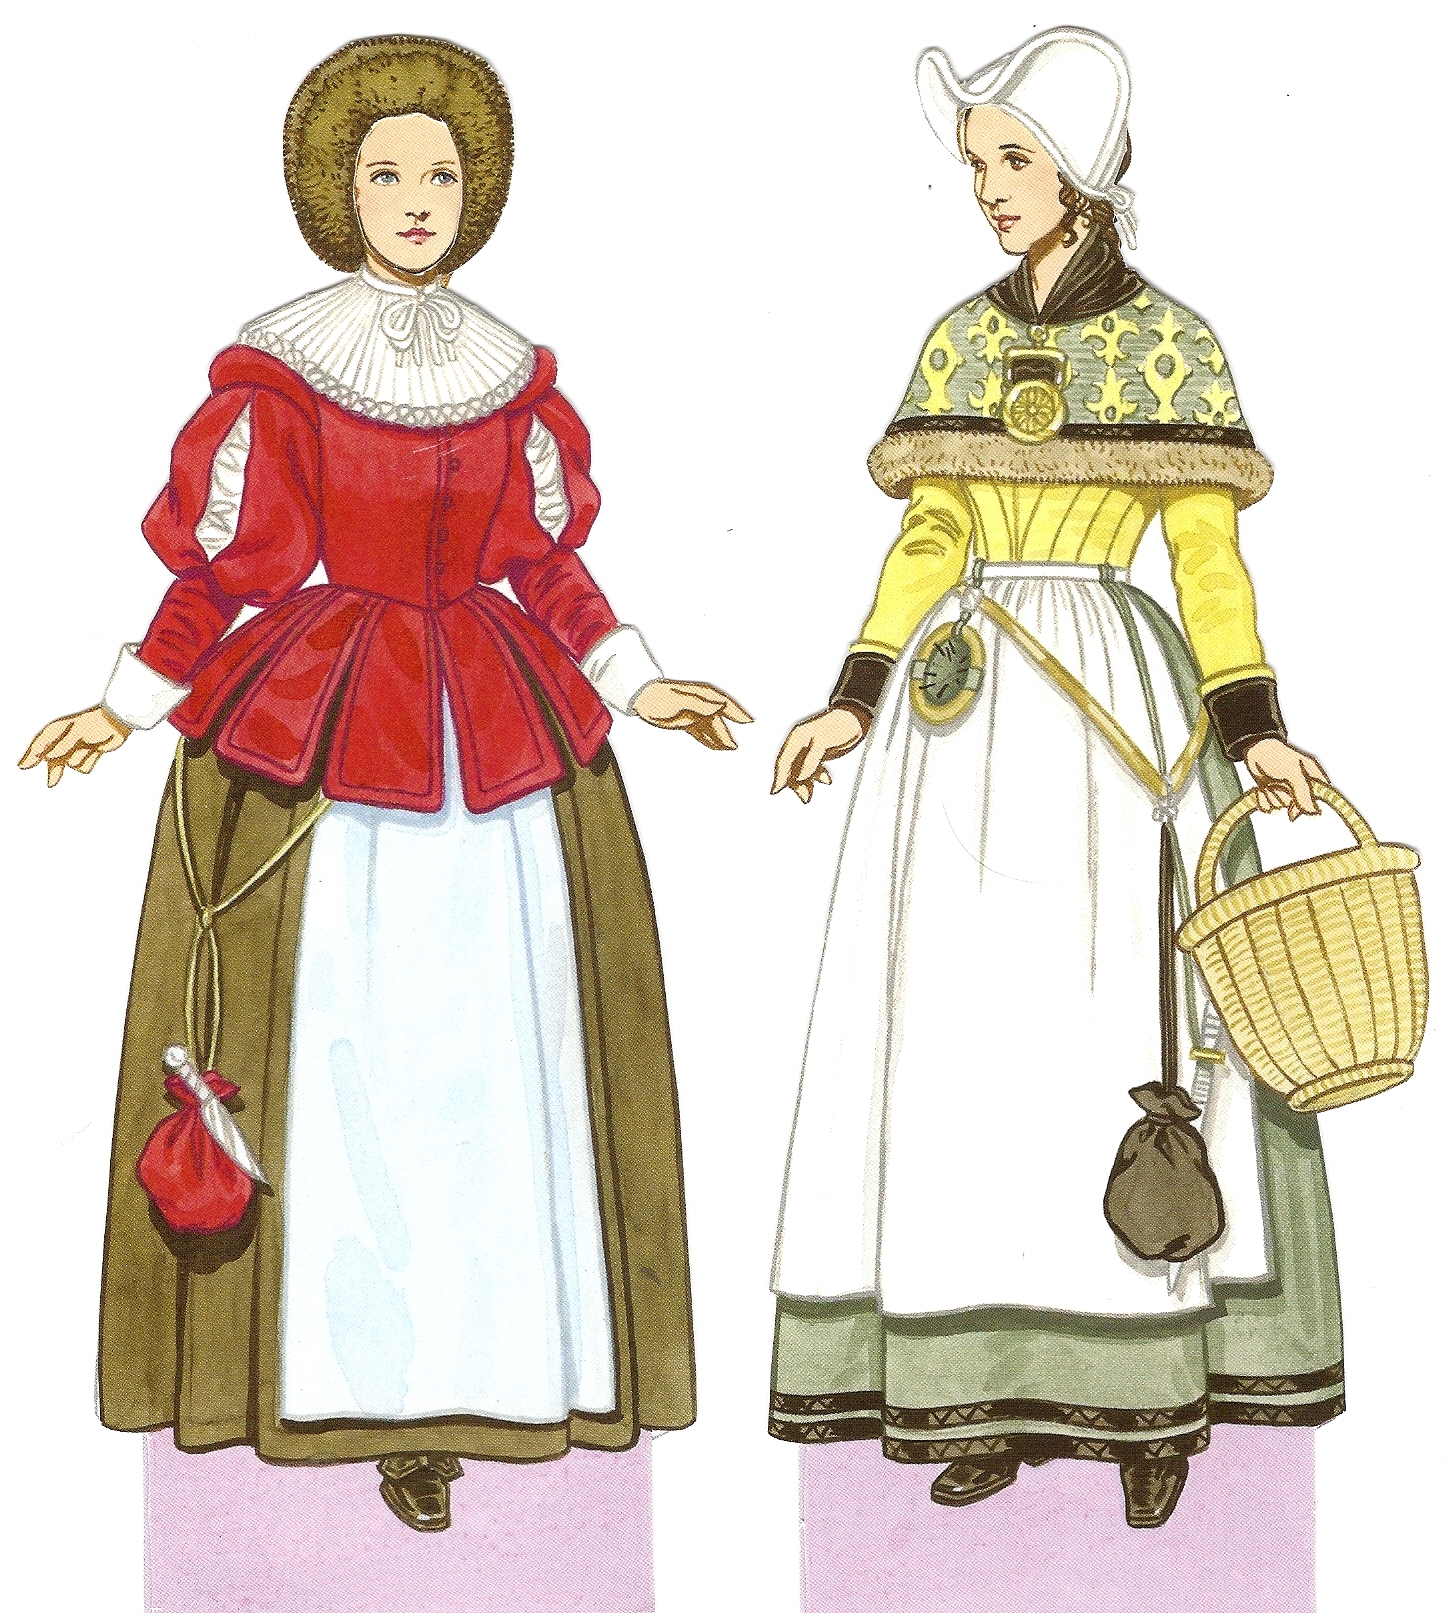 Womens clothing elizabethan era clipart vector freeuse History of Costume | European Fashion Through the Ages vector freeuse